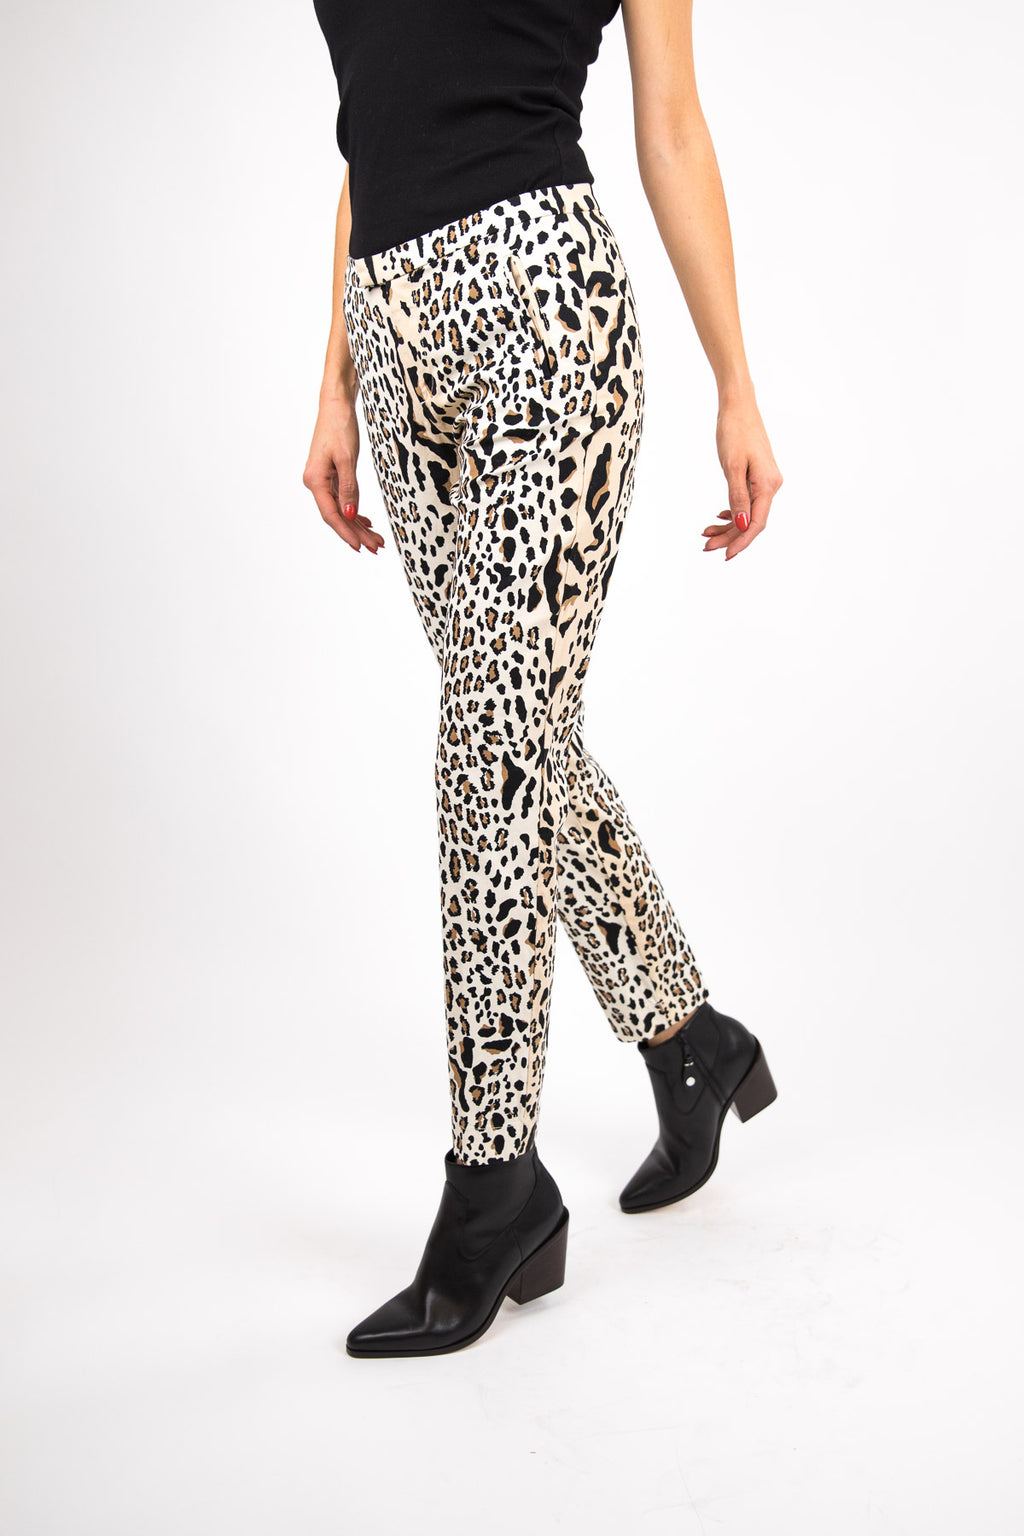 Leopard Print Cotton Slim Pant